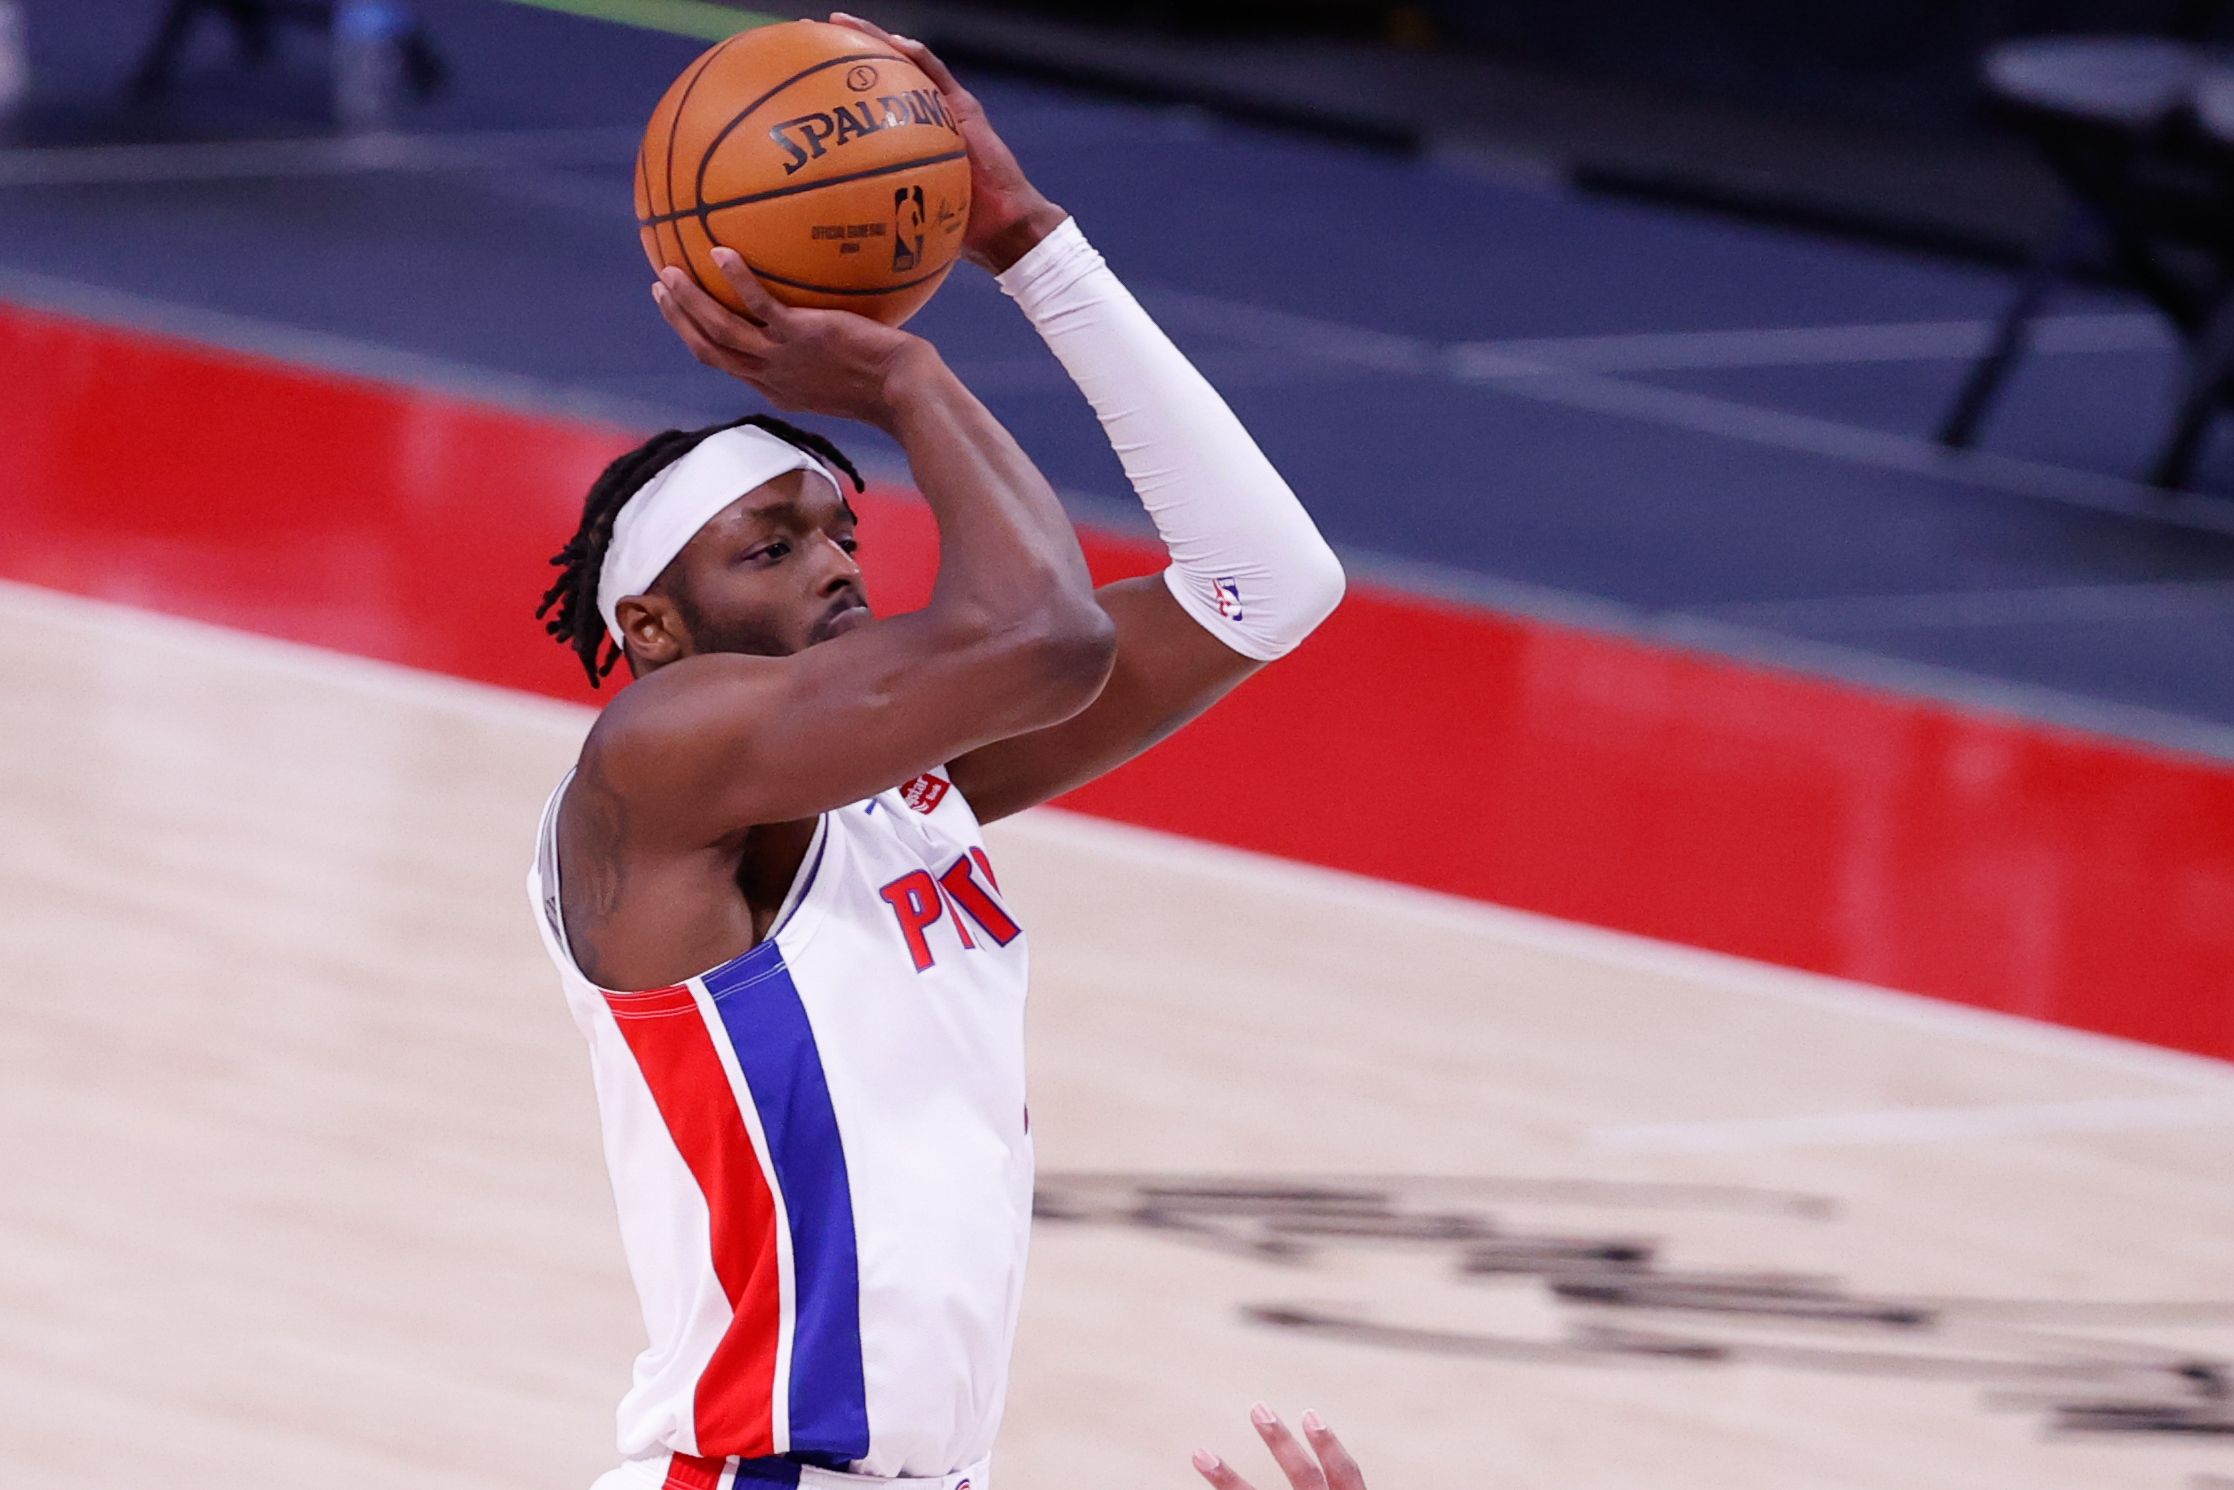 Detroit Pistons forward Jerami Grant shoots in the first half against the Portland Trail Blazers at Little Caesars Arena.